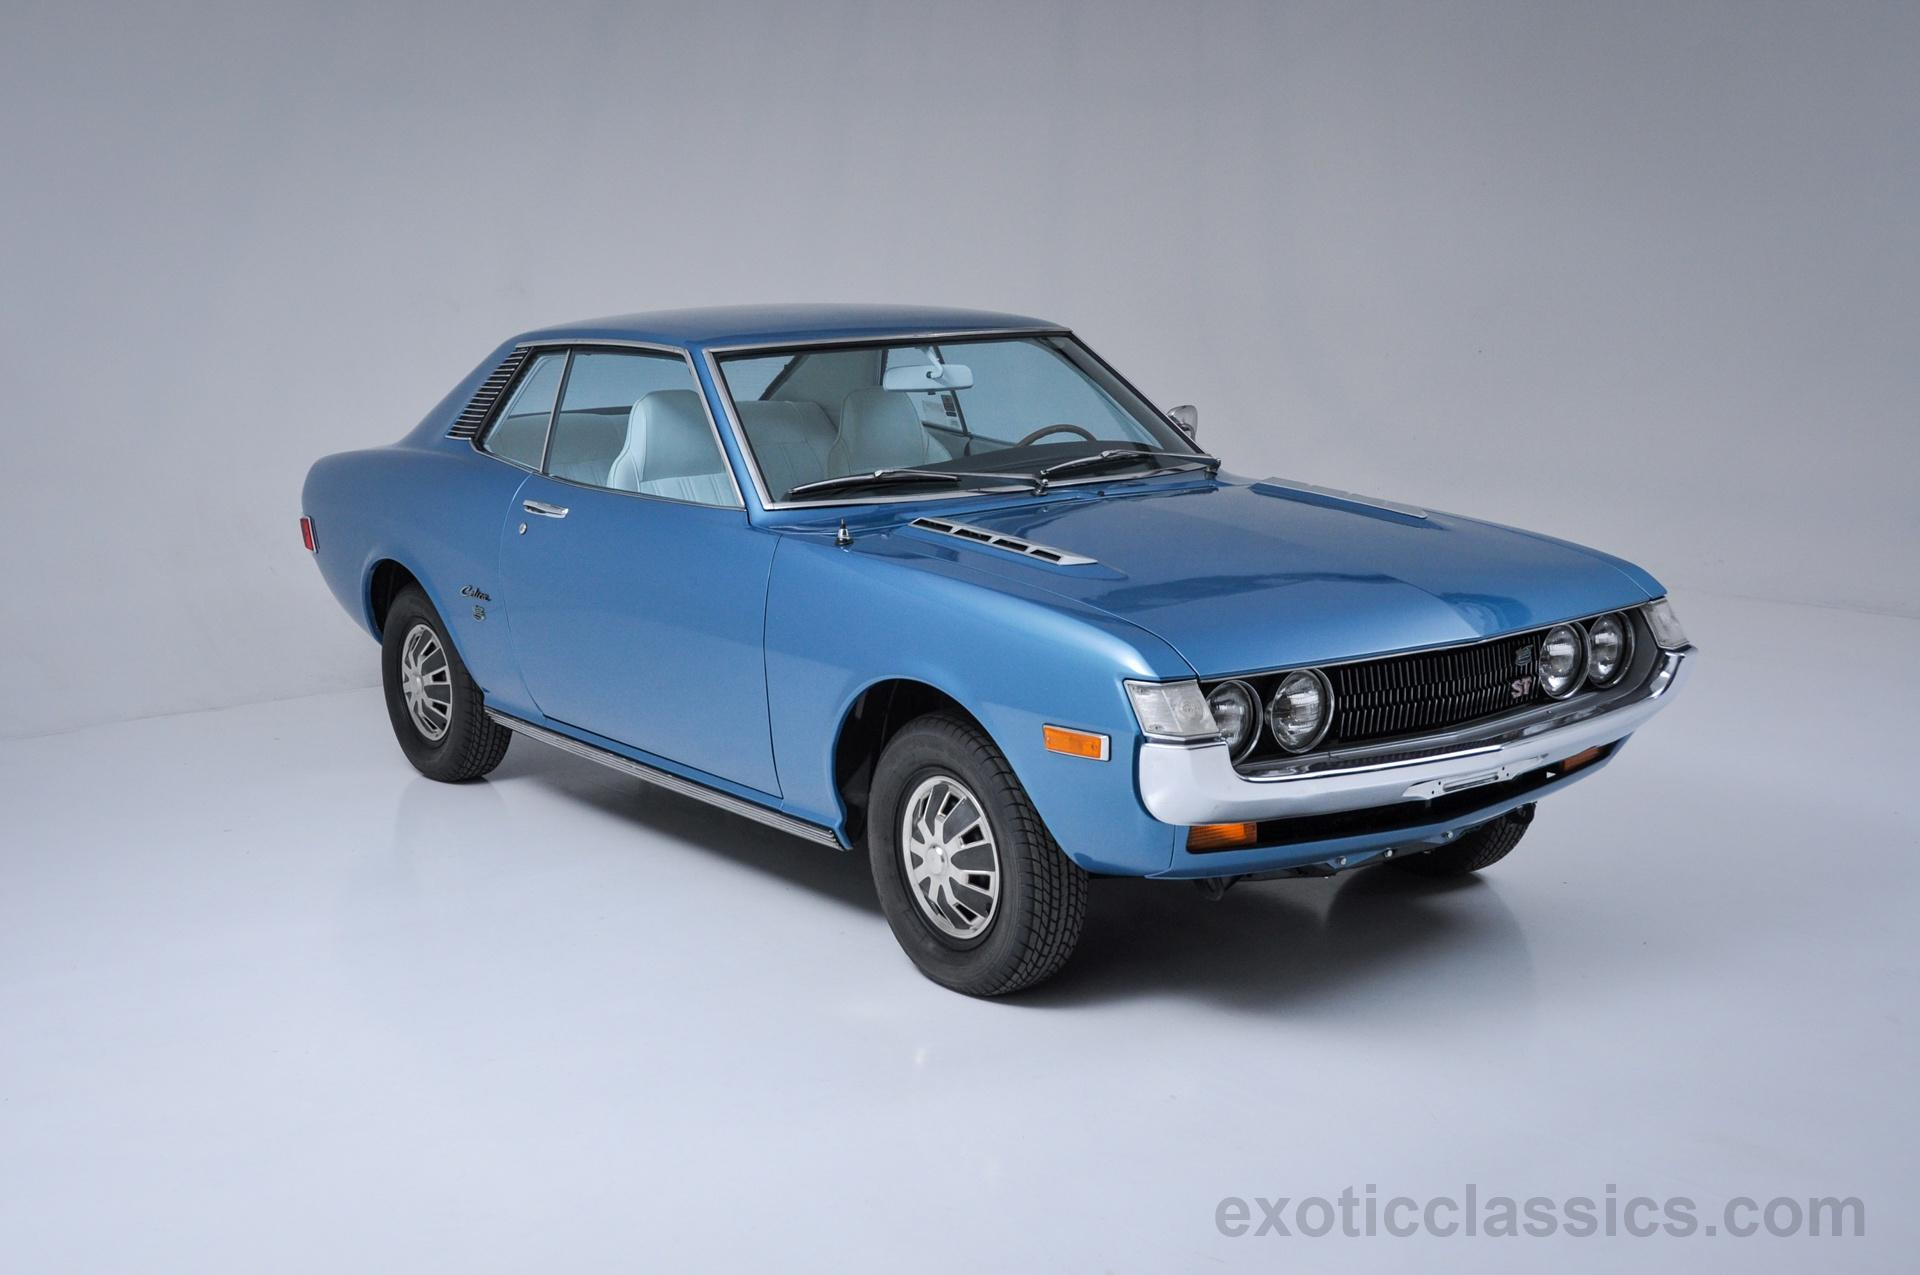 Toyota celica 1973 maintenance restoration of old vintage vehicles the material for new cogs casters gears pads could be cast polyamide which i